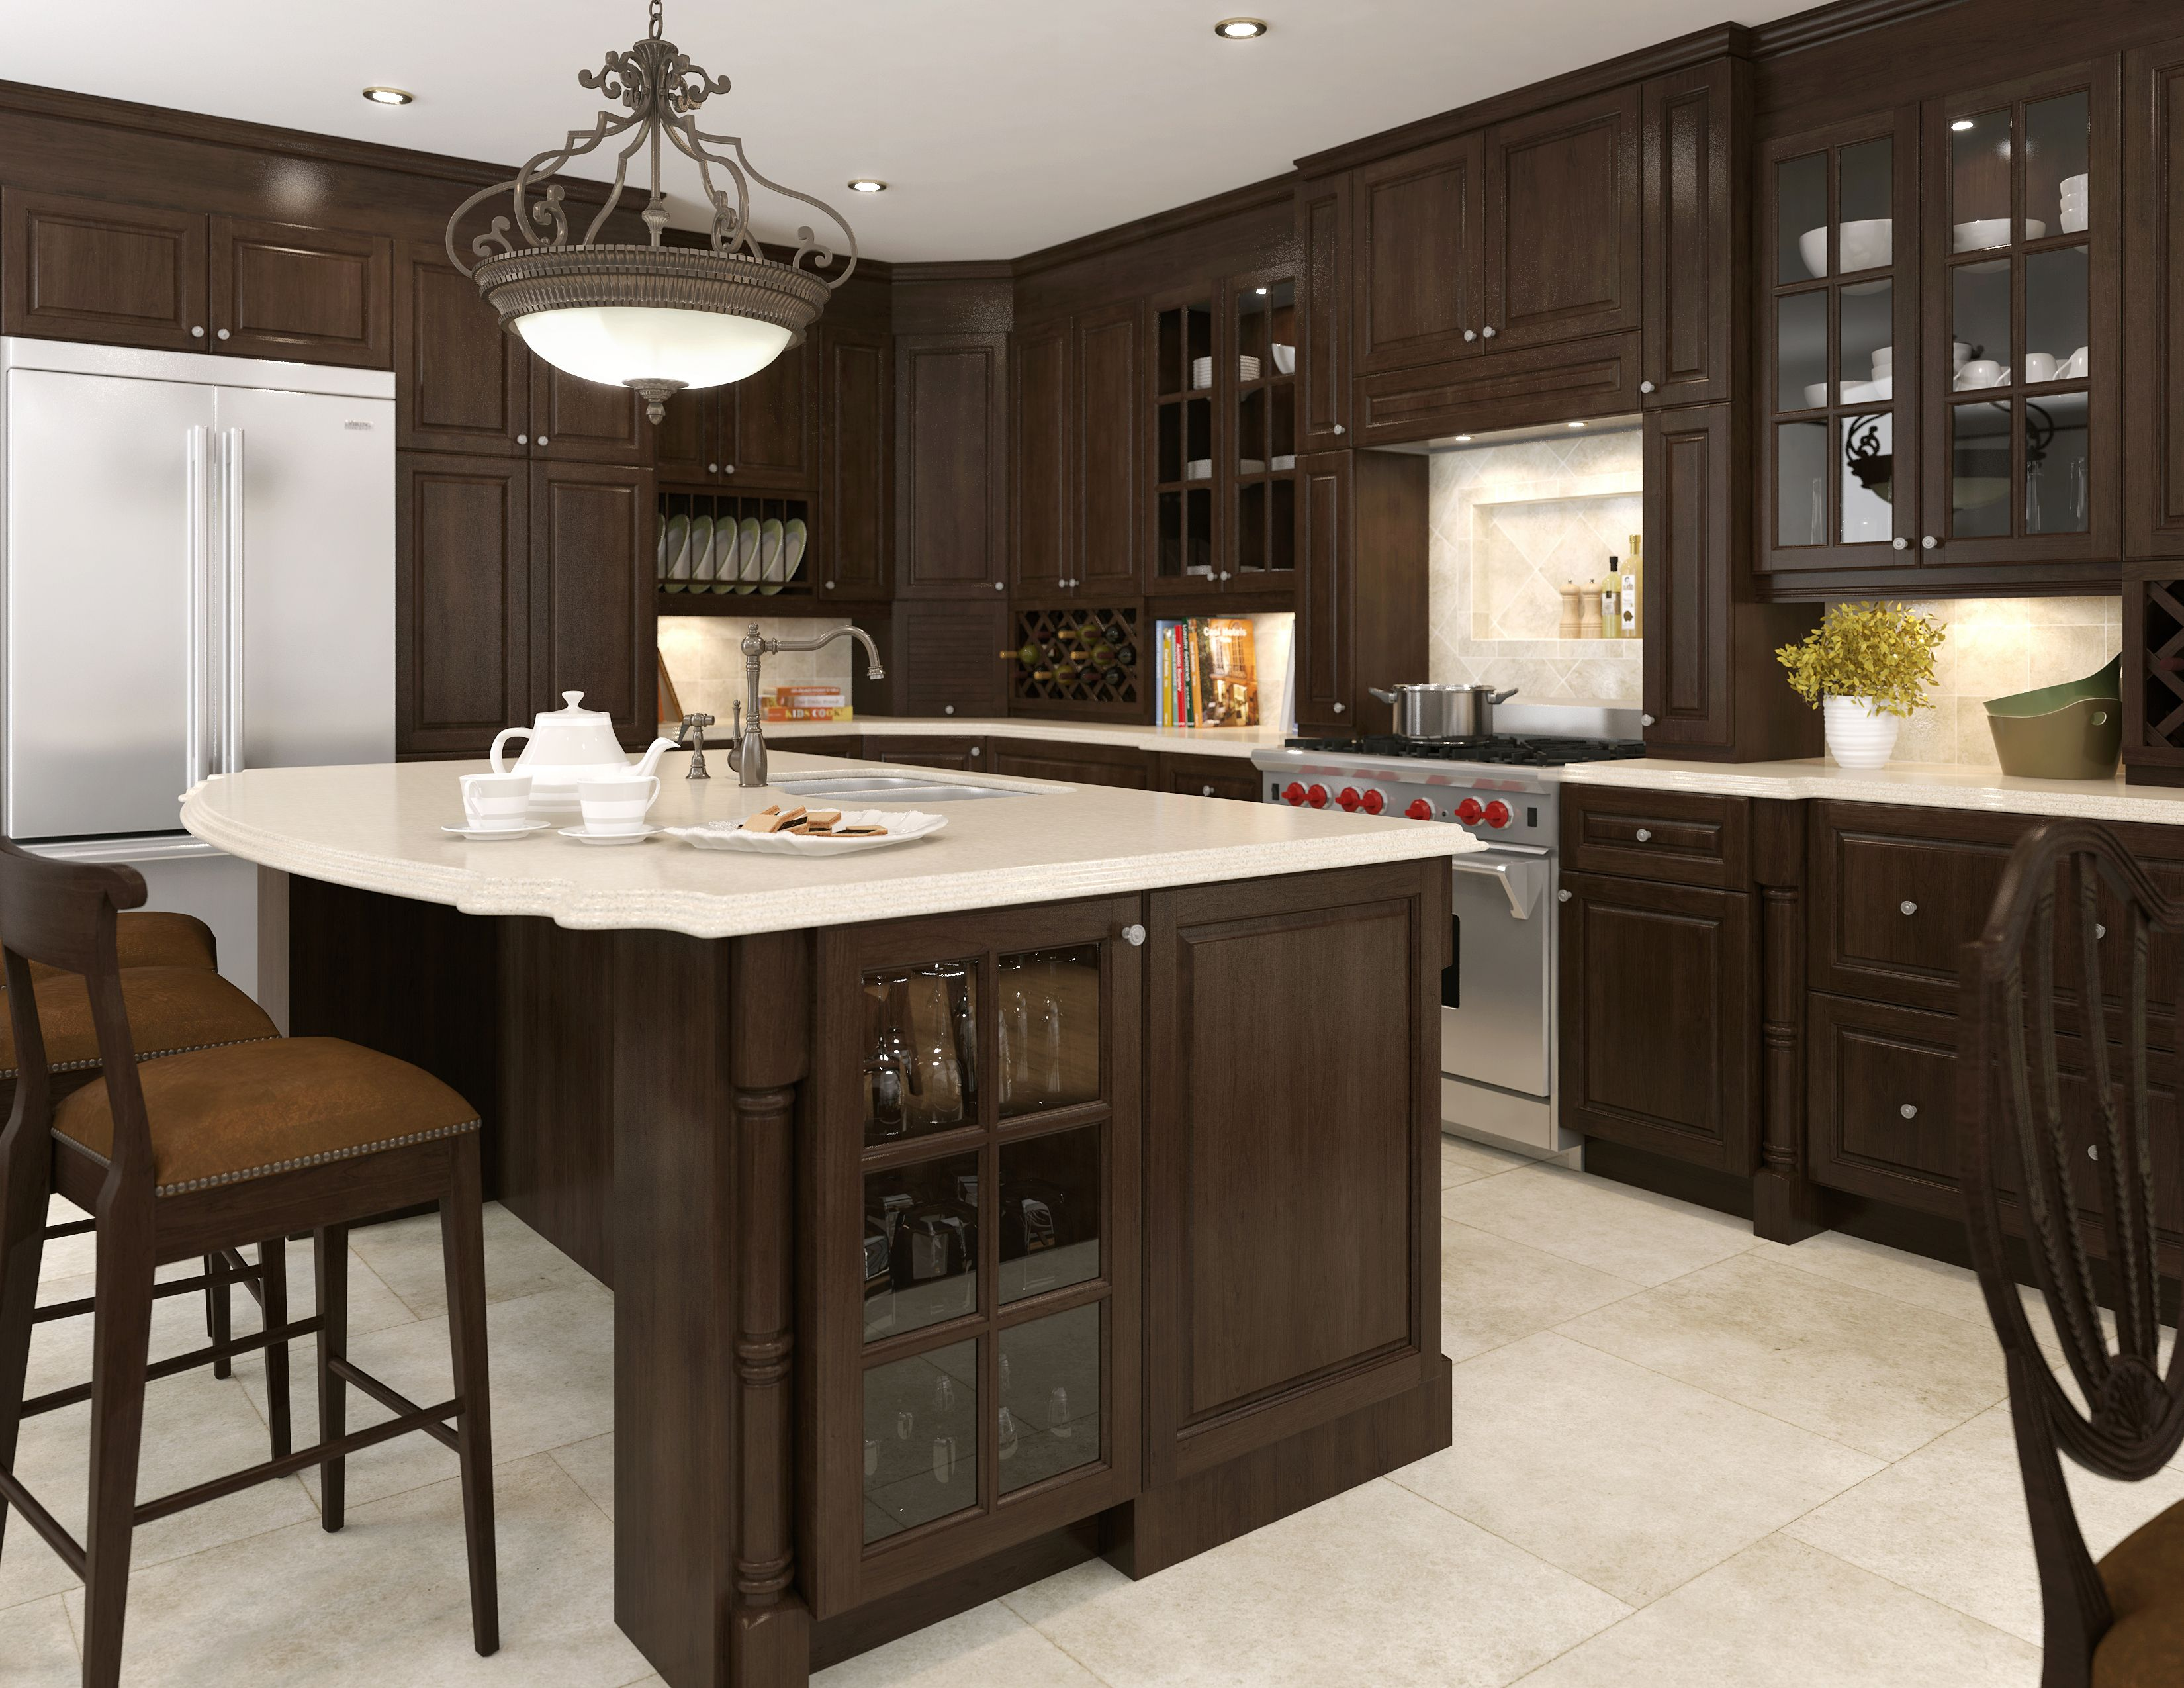 Traditional Kitchen From Eurostyle Kitchen Design Classic Kitchens Kitchen Inspirations